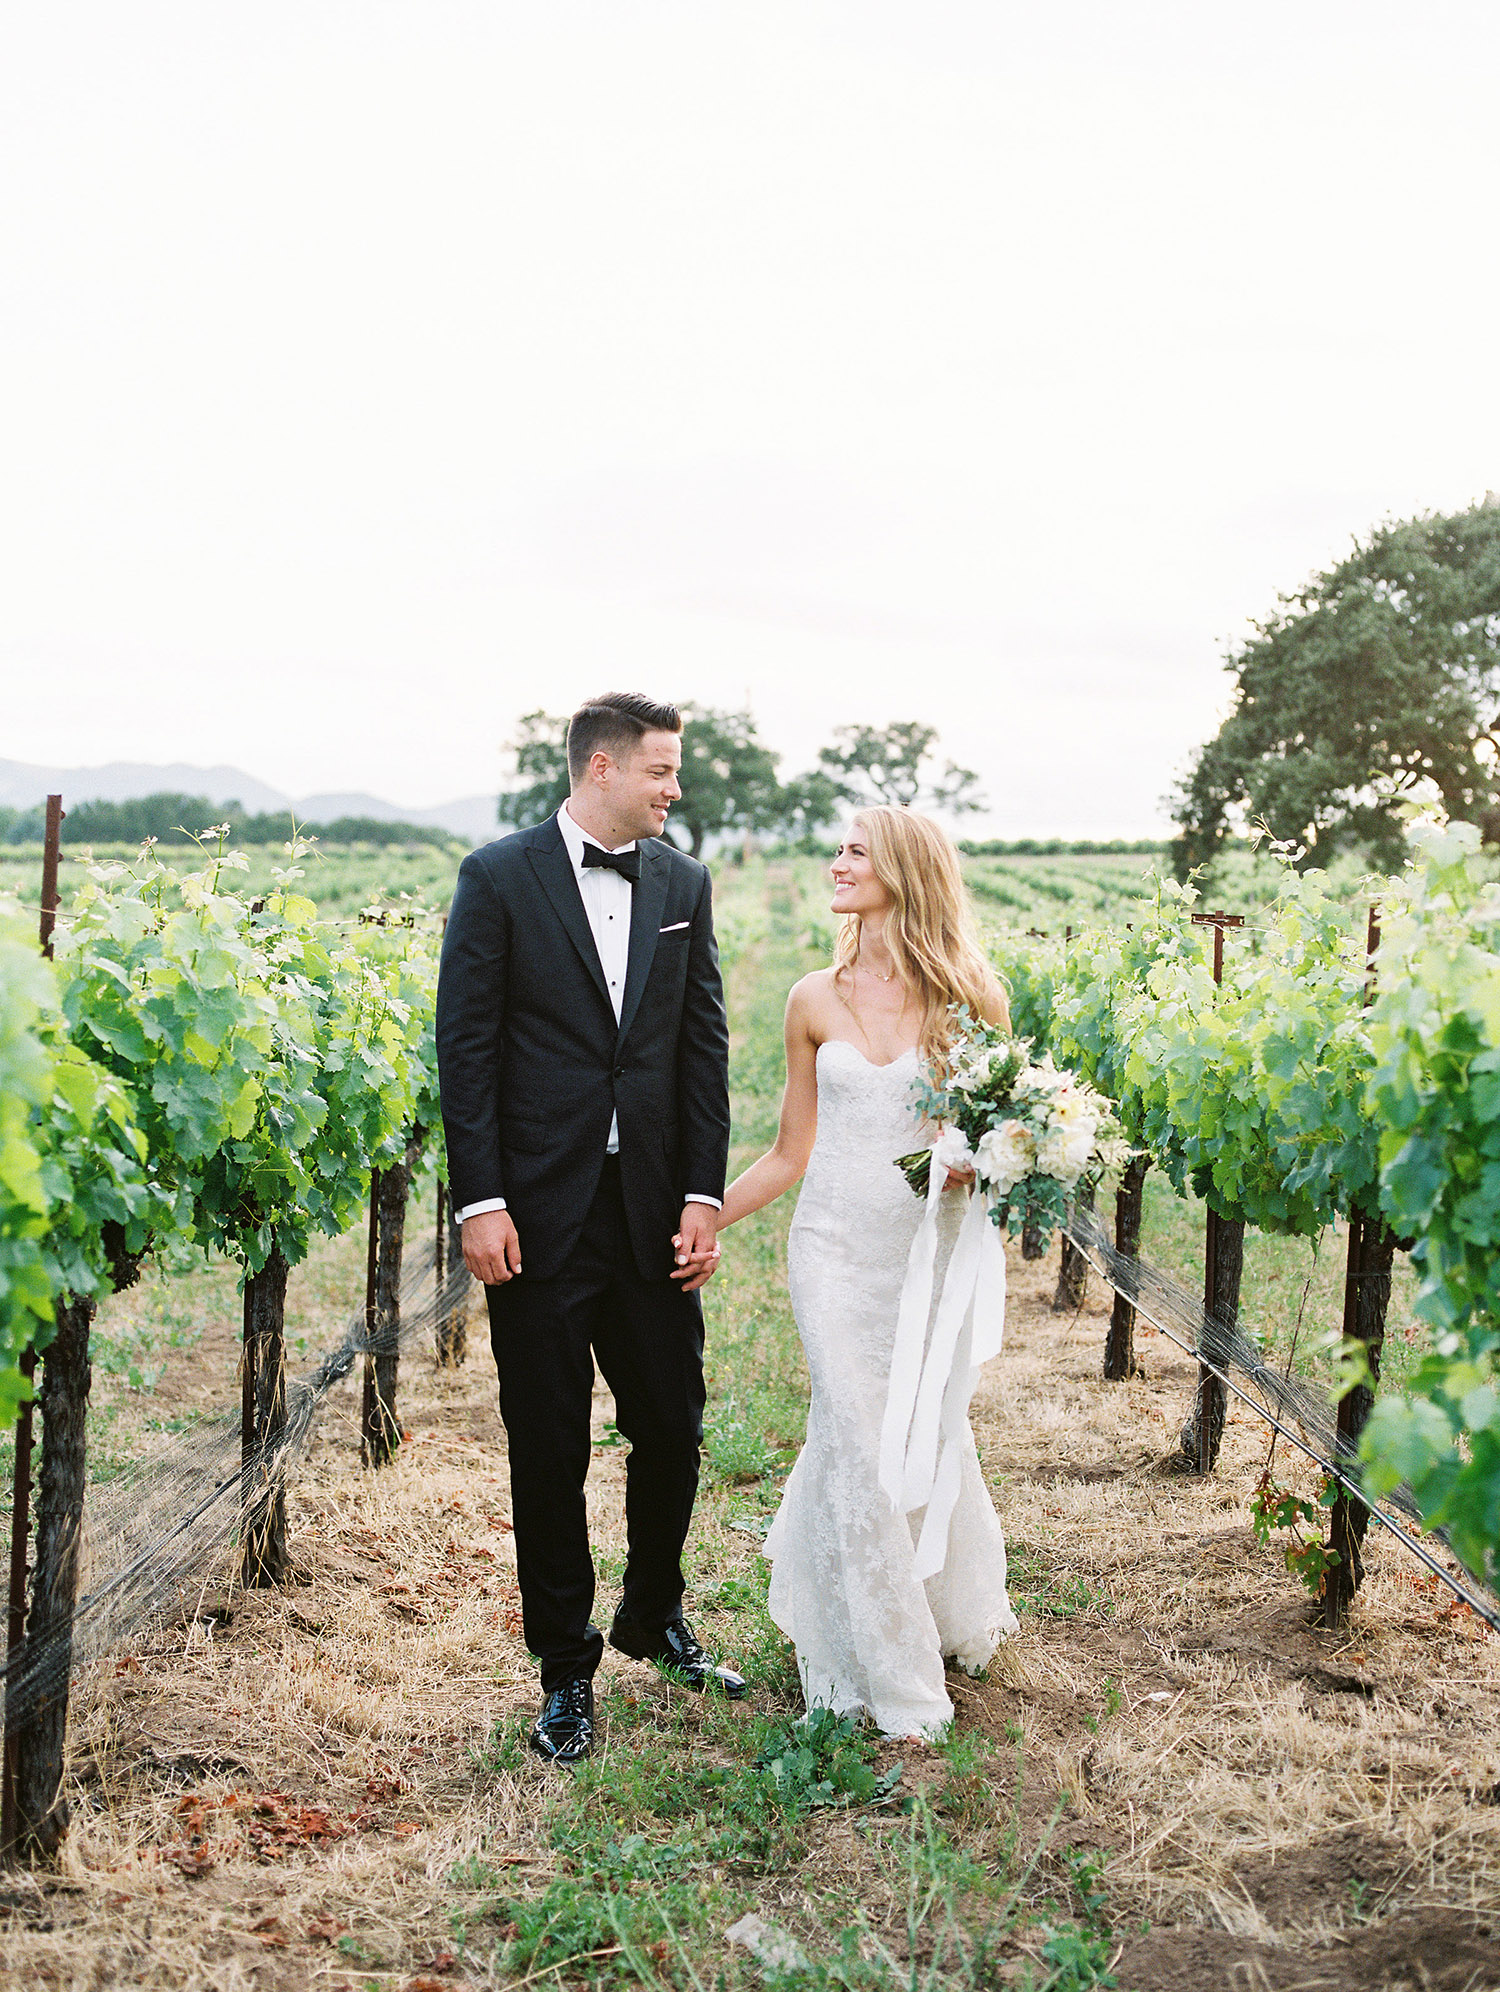 kati erik wedding couple holding hands in vineyard